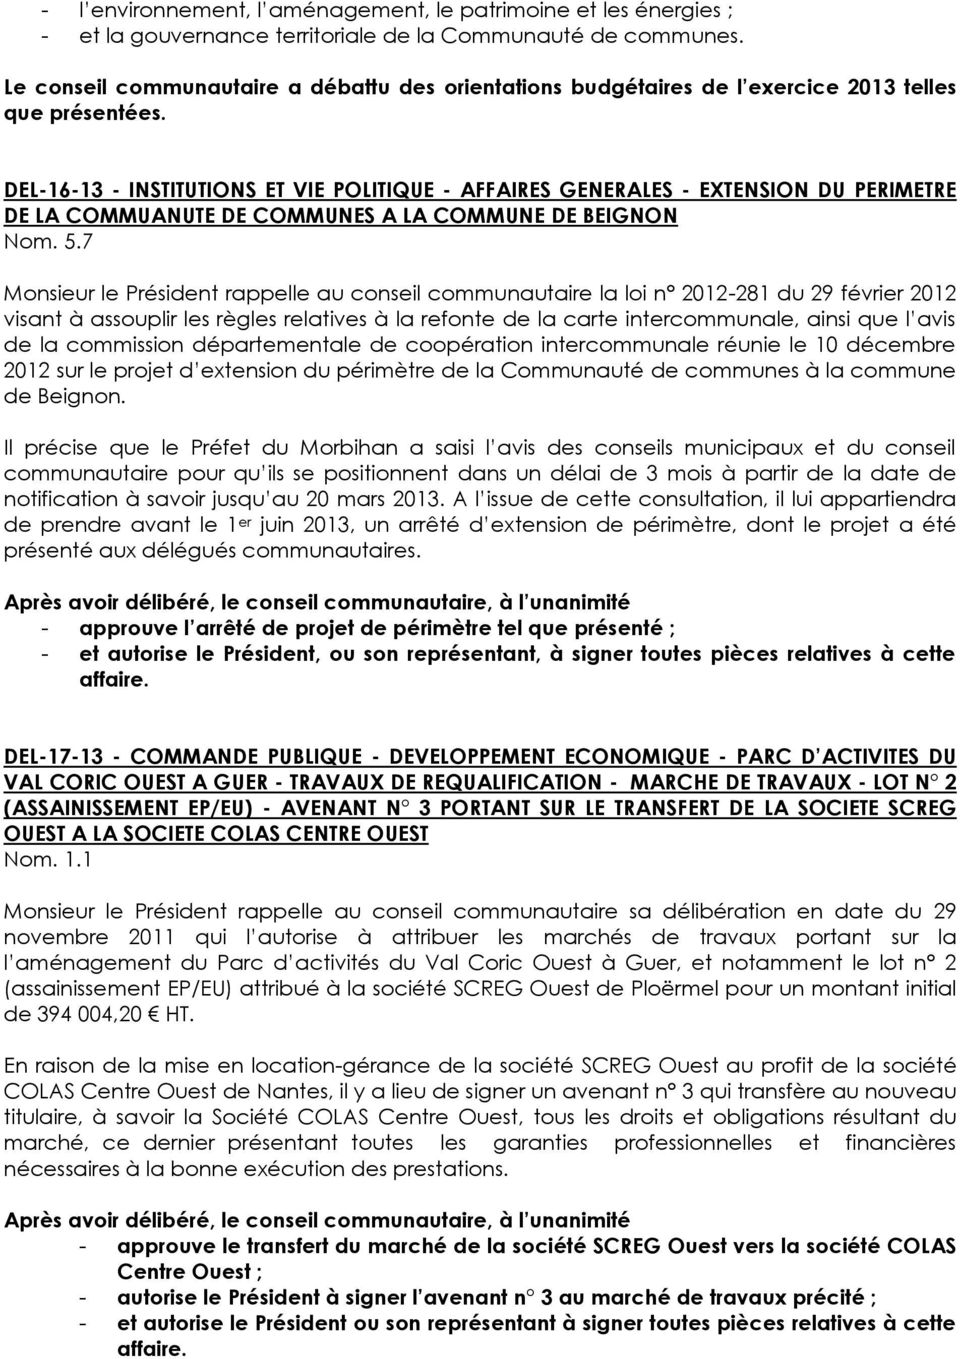 DEL-16-13 - INSTITUTIONS ET VIE POLITIQUE - AFFAIRES GENERALES - EXTENSION DU PERIMETRE DE LA COMMUANUTE DE COMMUNES A LA COMMUNE DE BEIGNON Nom. 5.